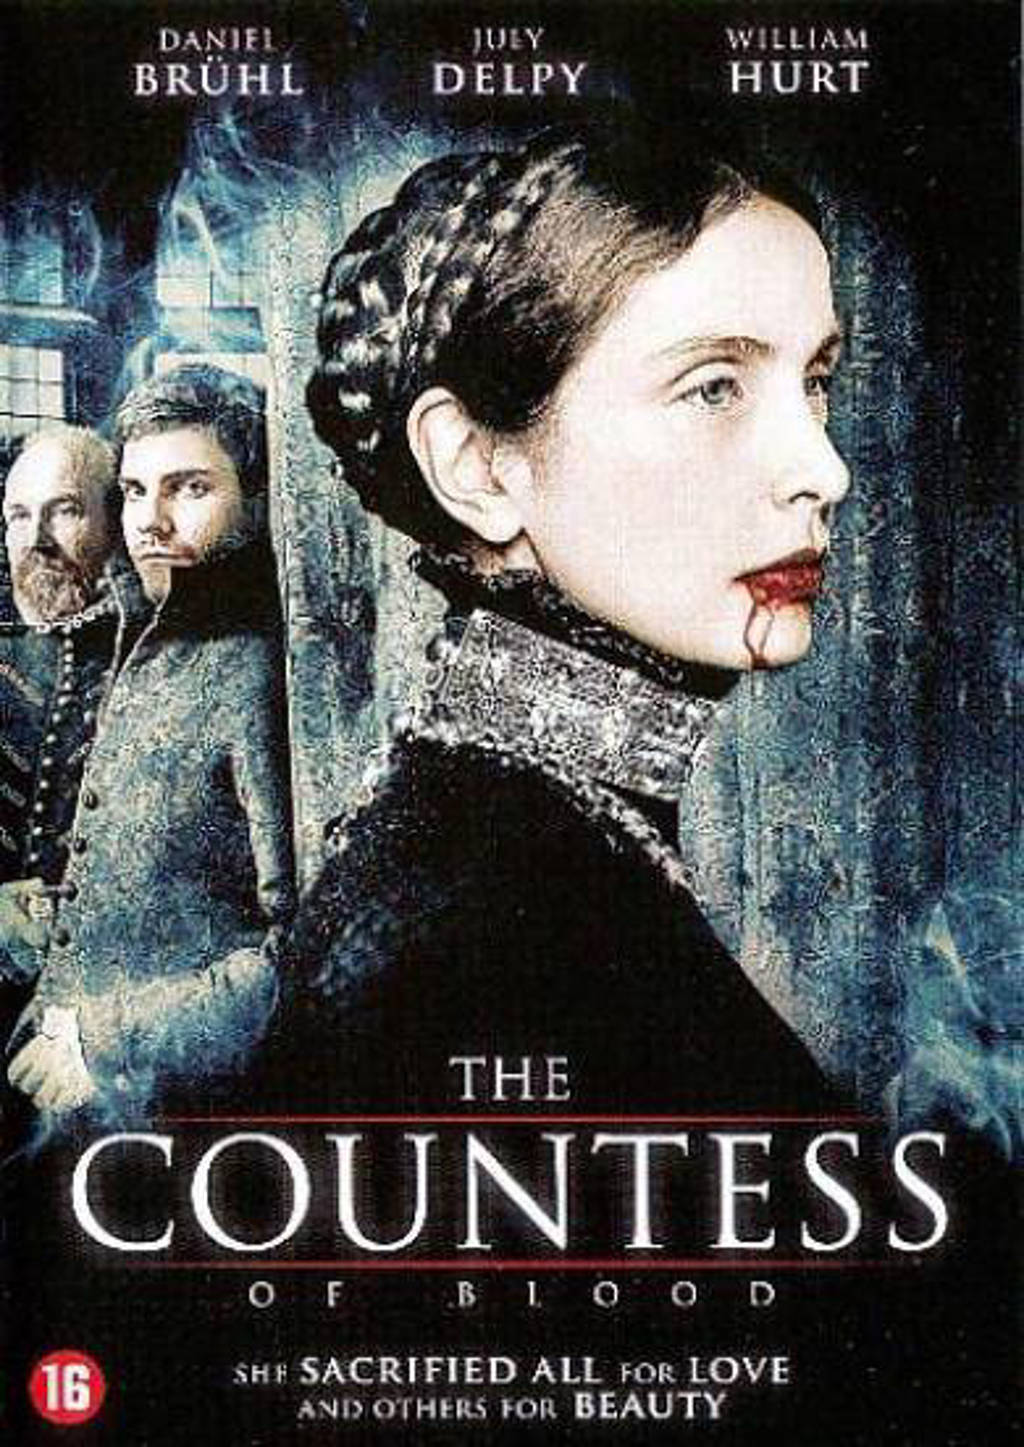 Countess of blood (DVD)